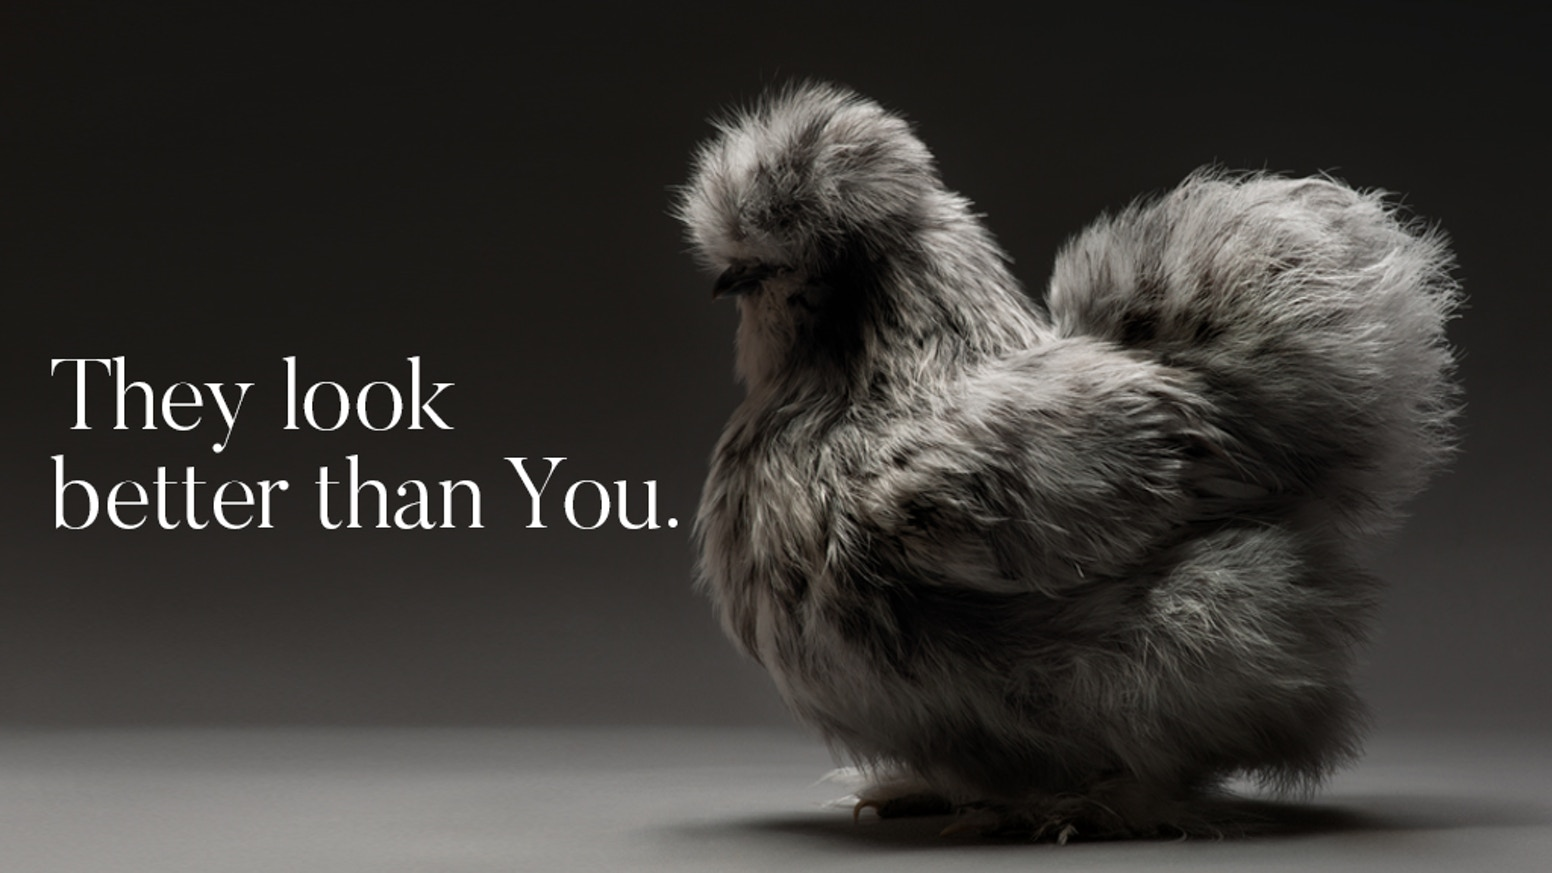 25 Best Chicken Quotes On Pinterest: The Most Stunning High Quality Chicken Book Photos Ever